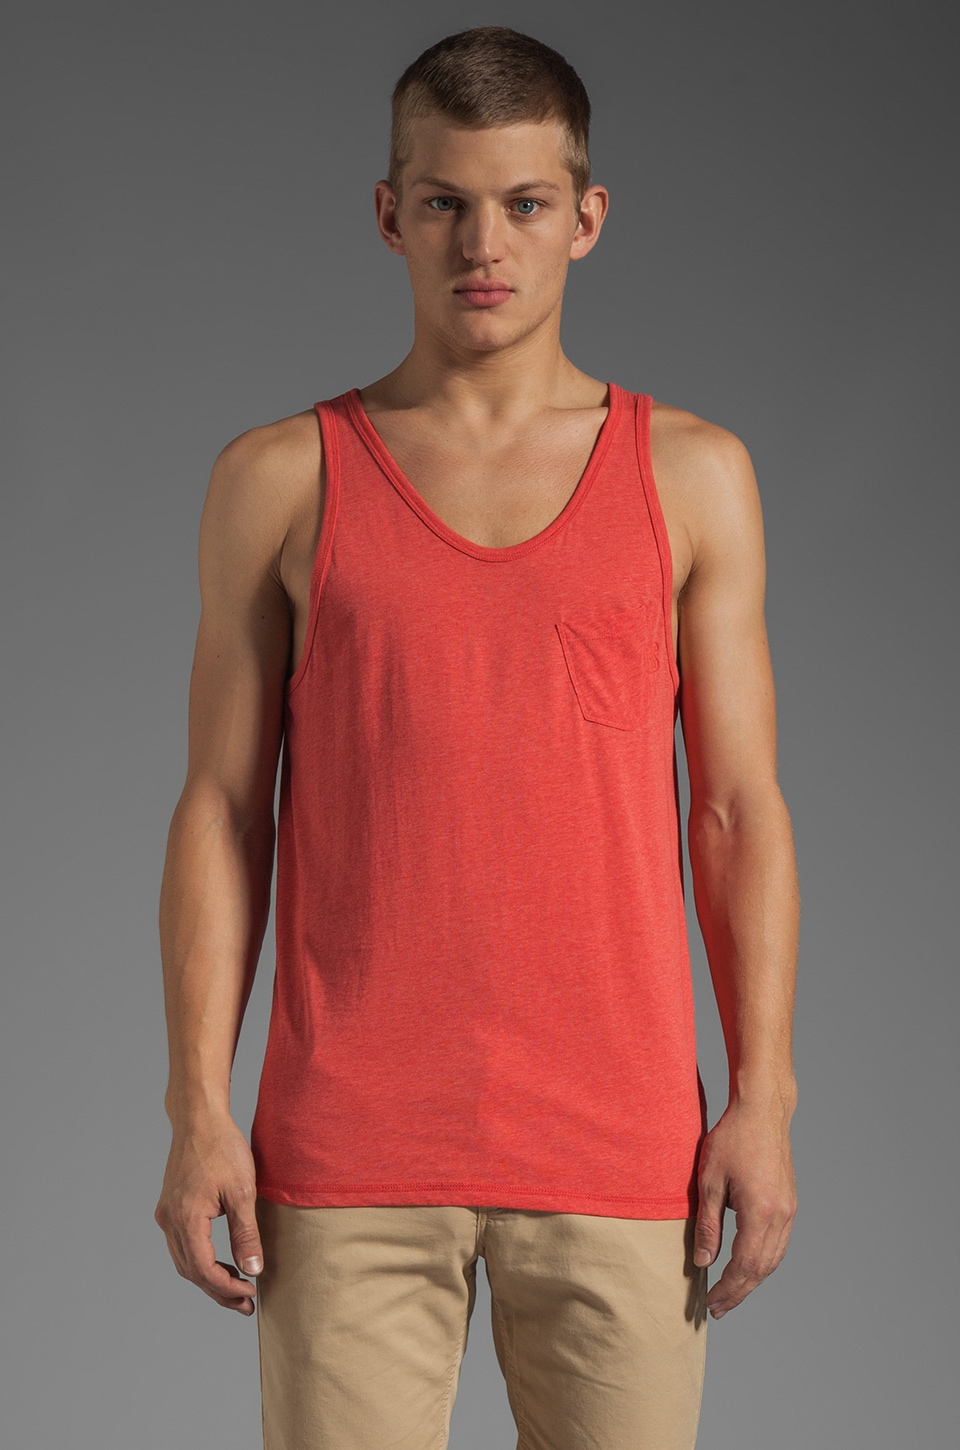 G-Star Ace Loose Tank in Ketchup Heather